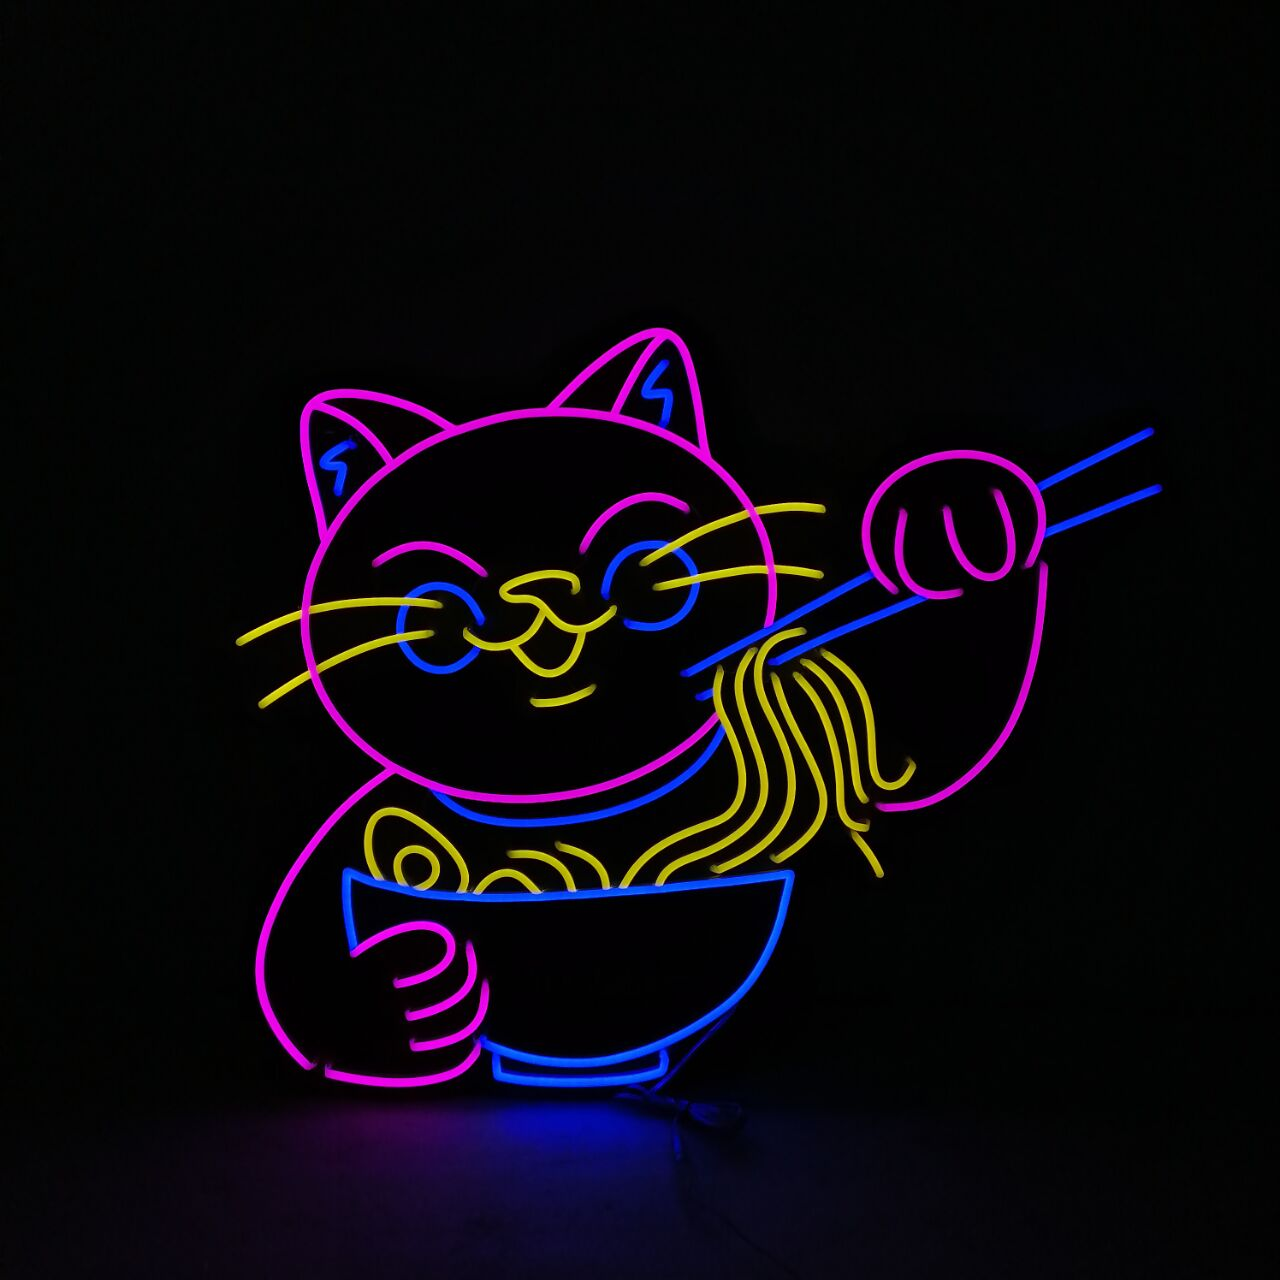 Neon Light Night Sign for Lucky Cat Hotel Display Neon Lights Room Decoration Glass Lamp Advertise Letrero Neon enlarge